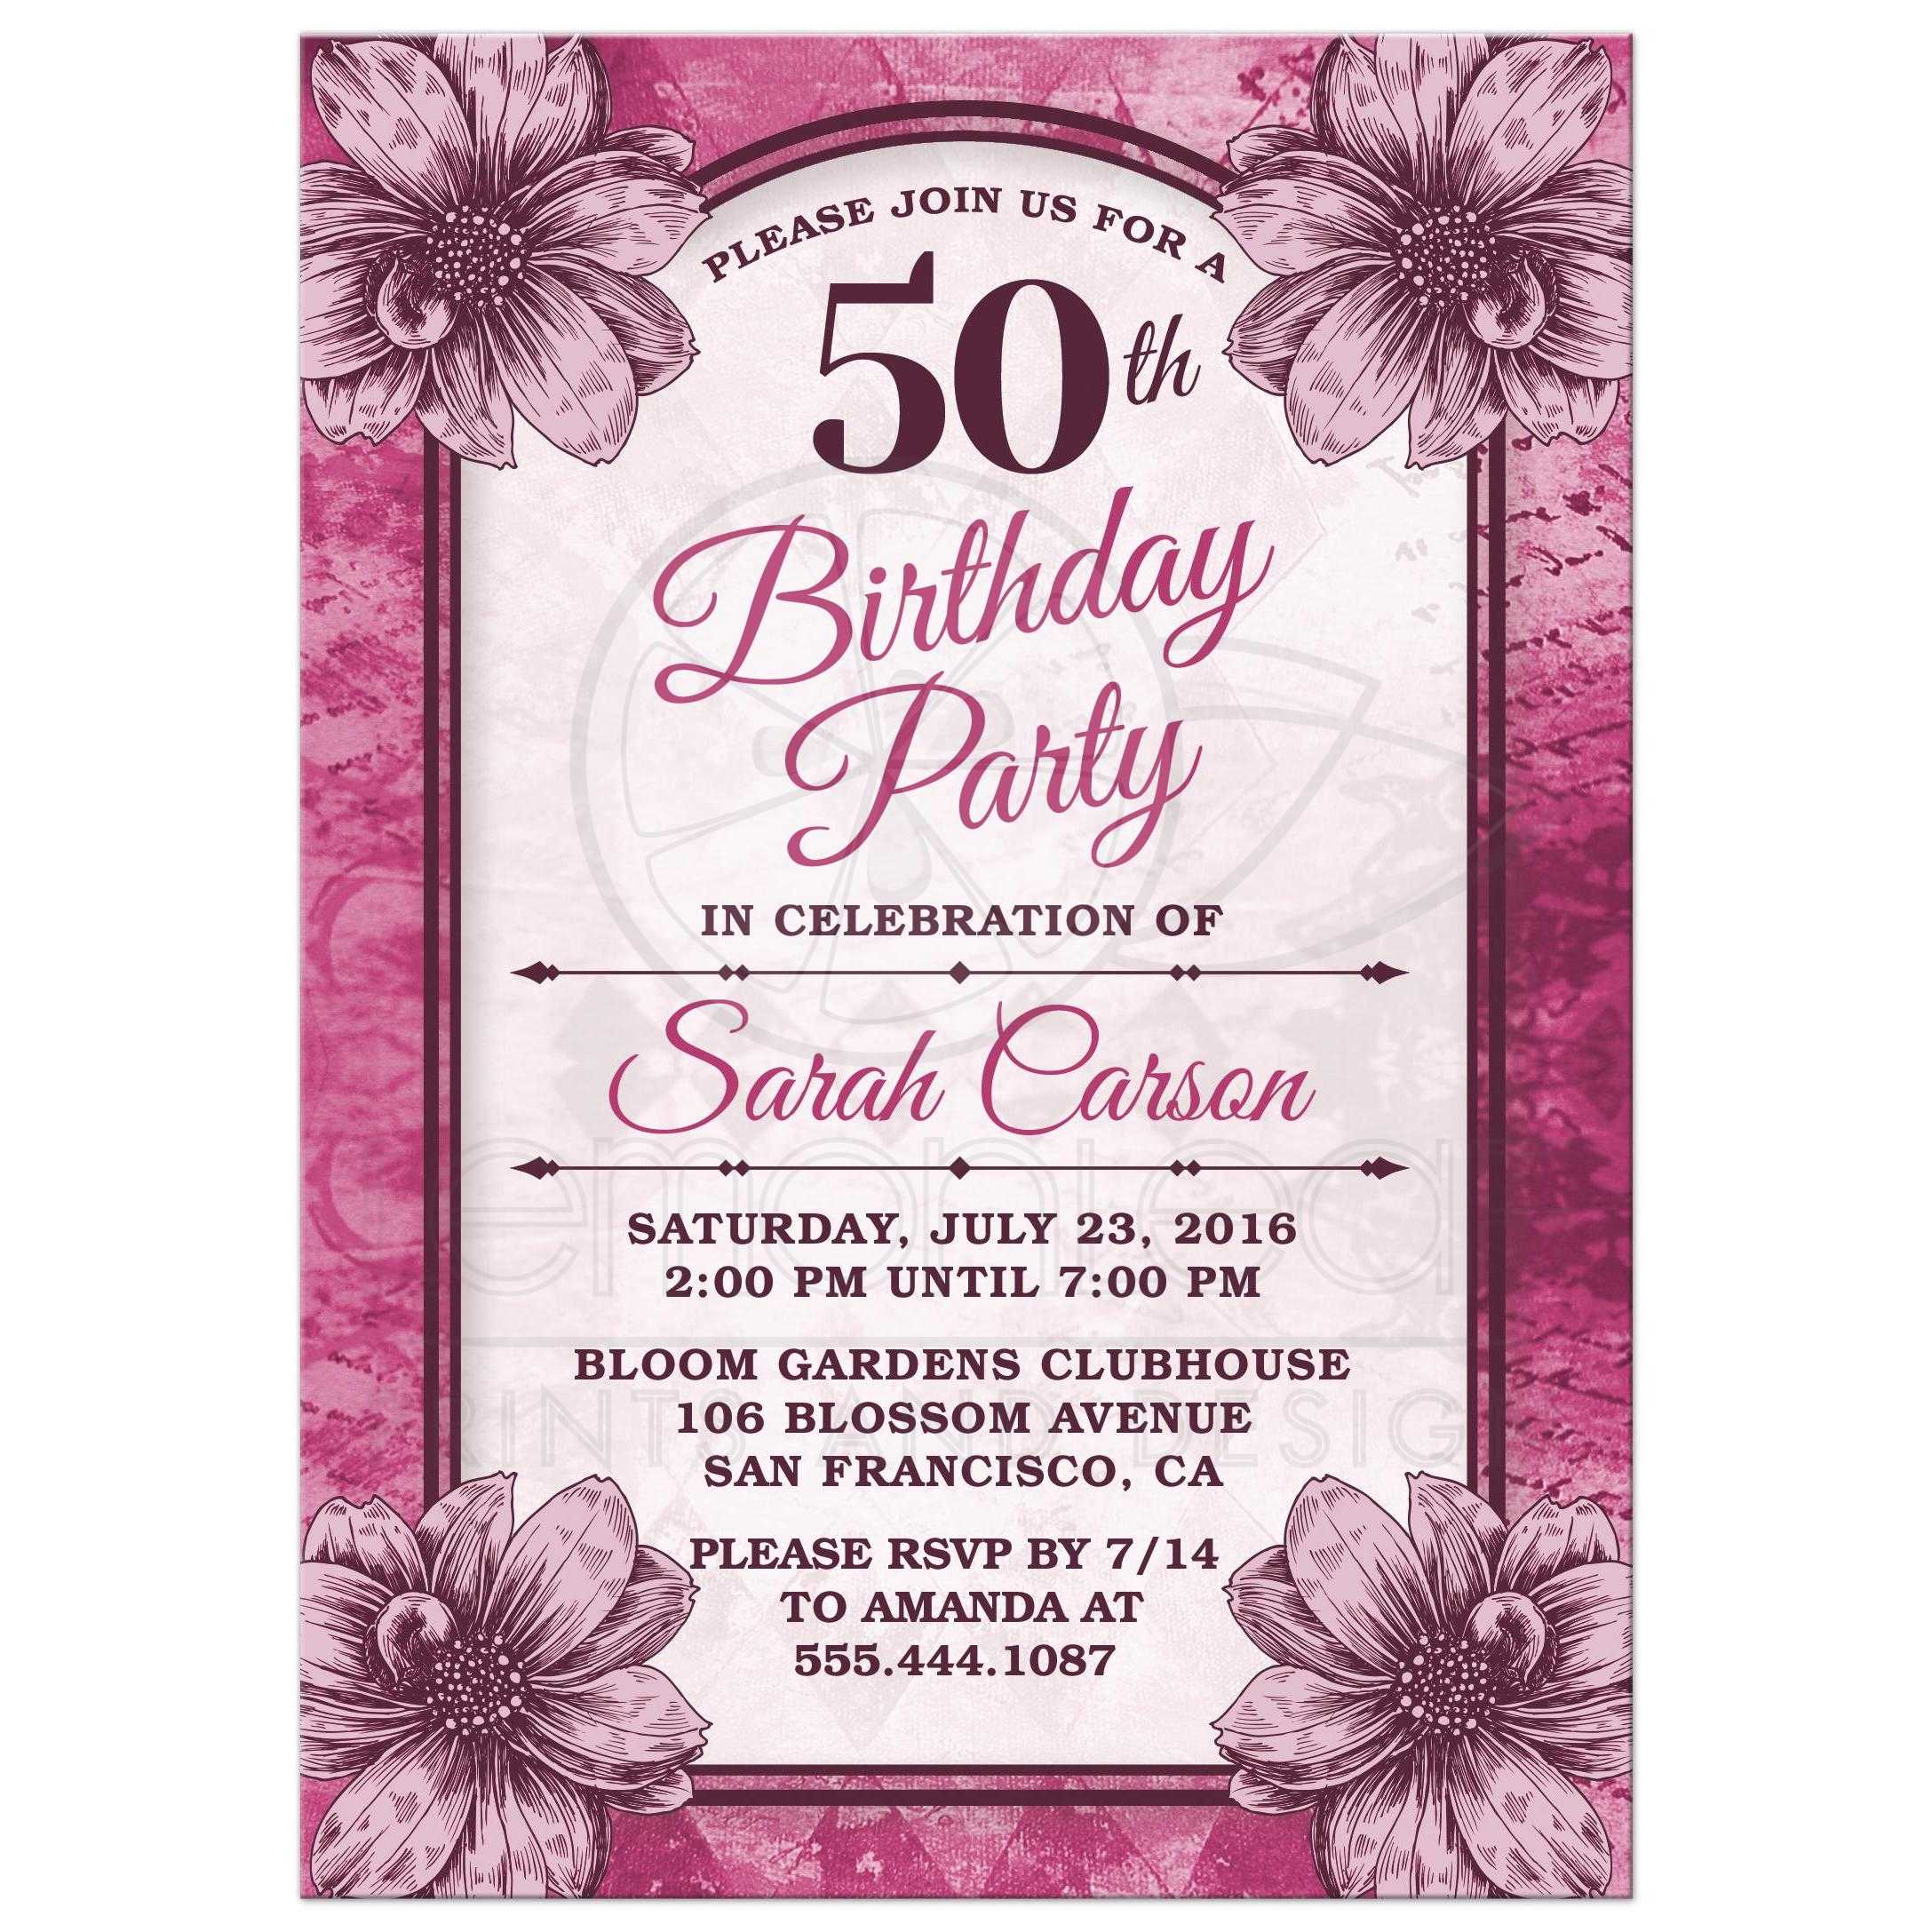 50th birthday party invitations fuchsia flowers